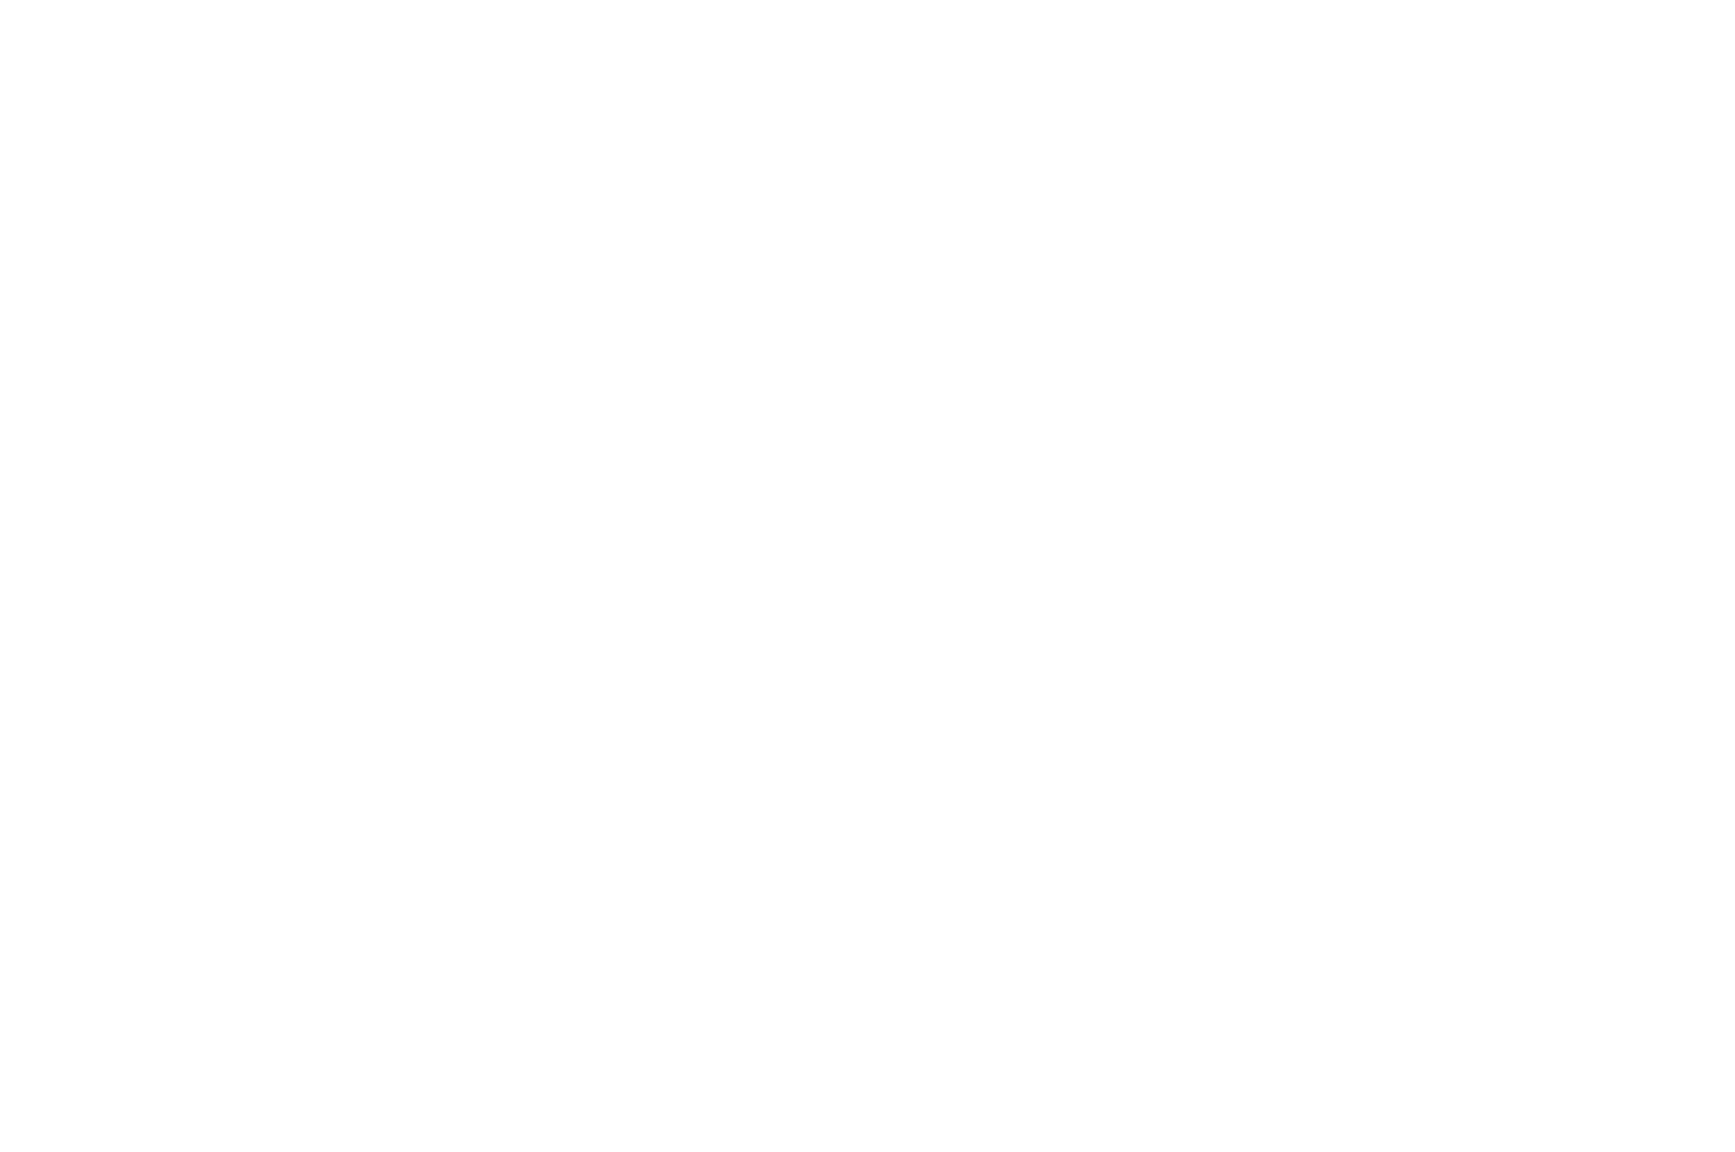 BEST SCREEN WRITER - TMFF - The Monthly Film Festival - 2016